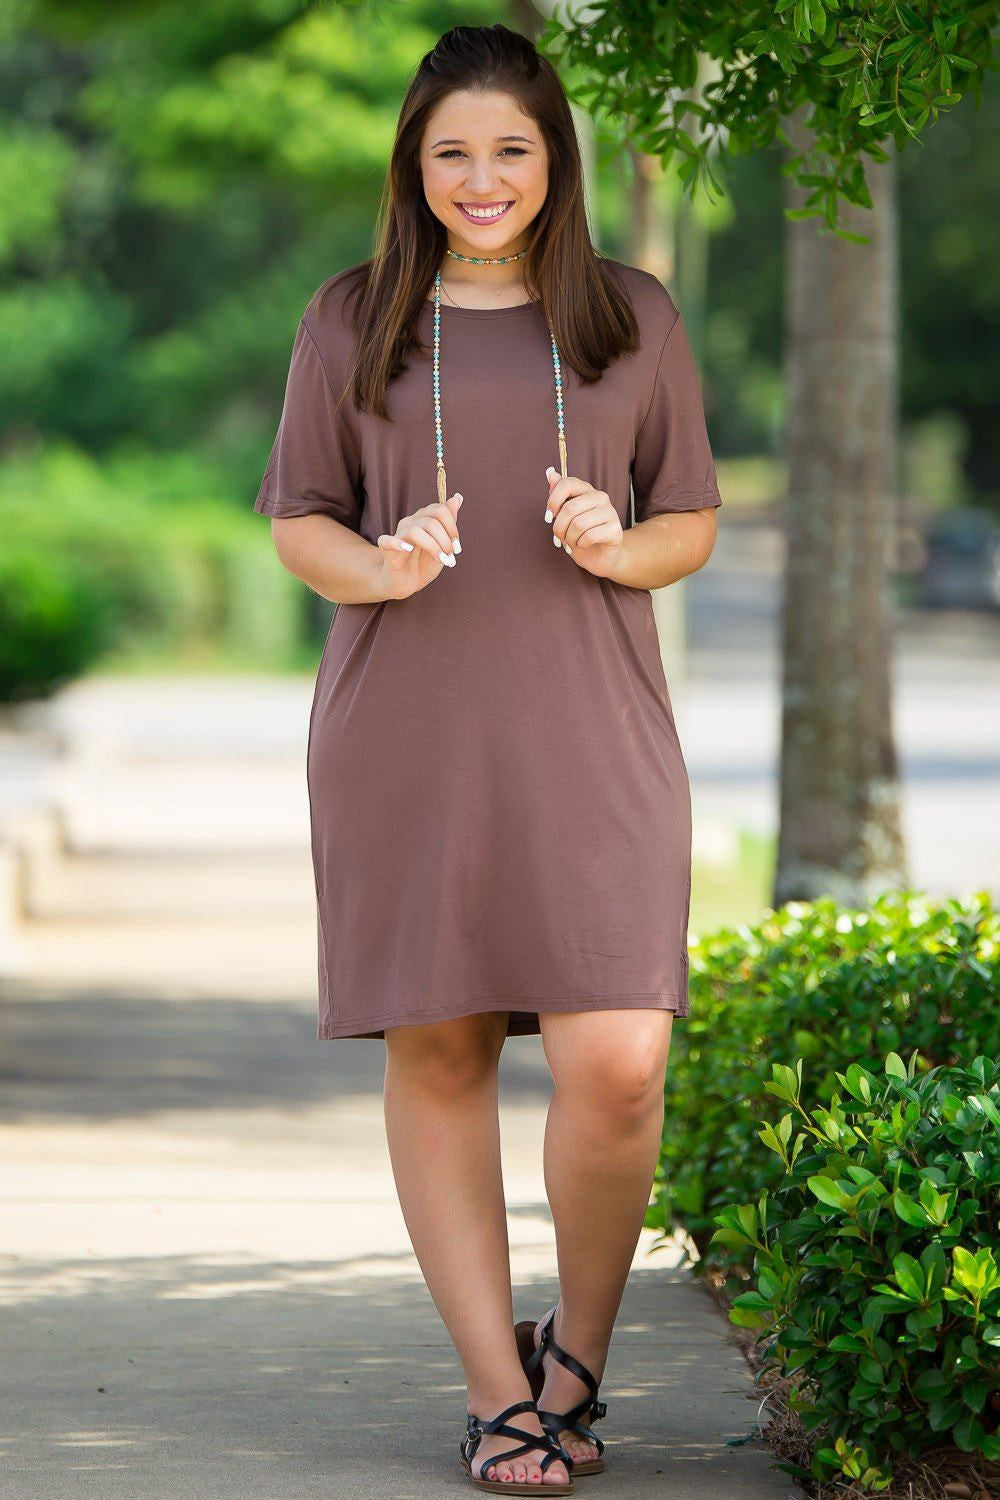 Short Sleeve Piko Dress - Brown - Piko Clothing - 1